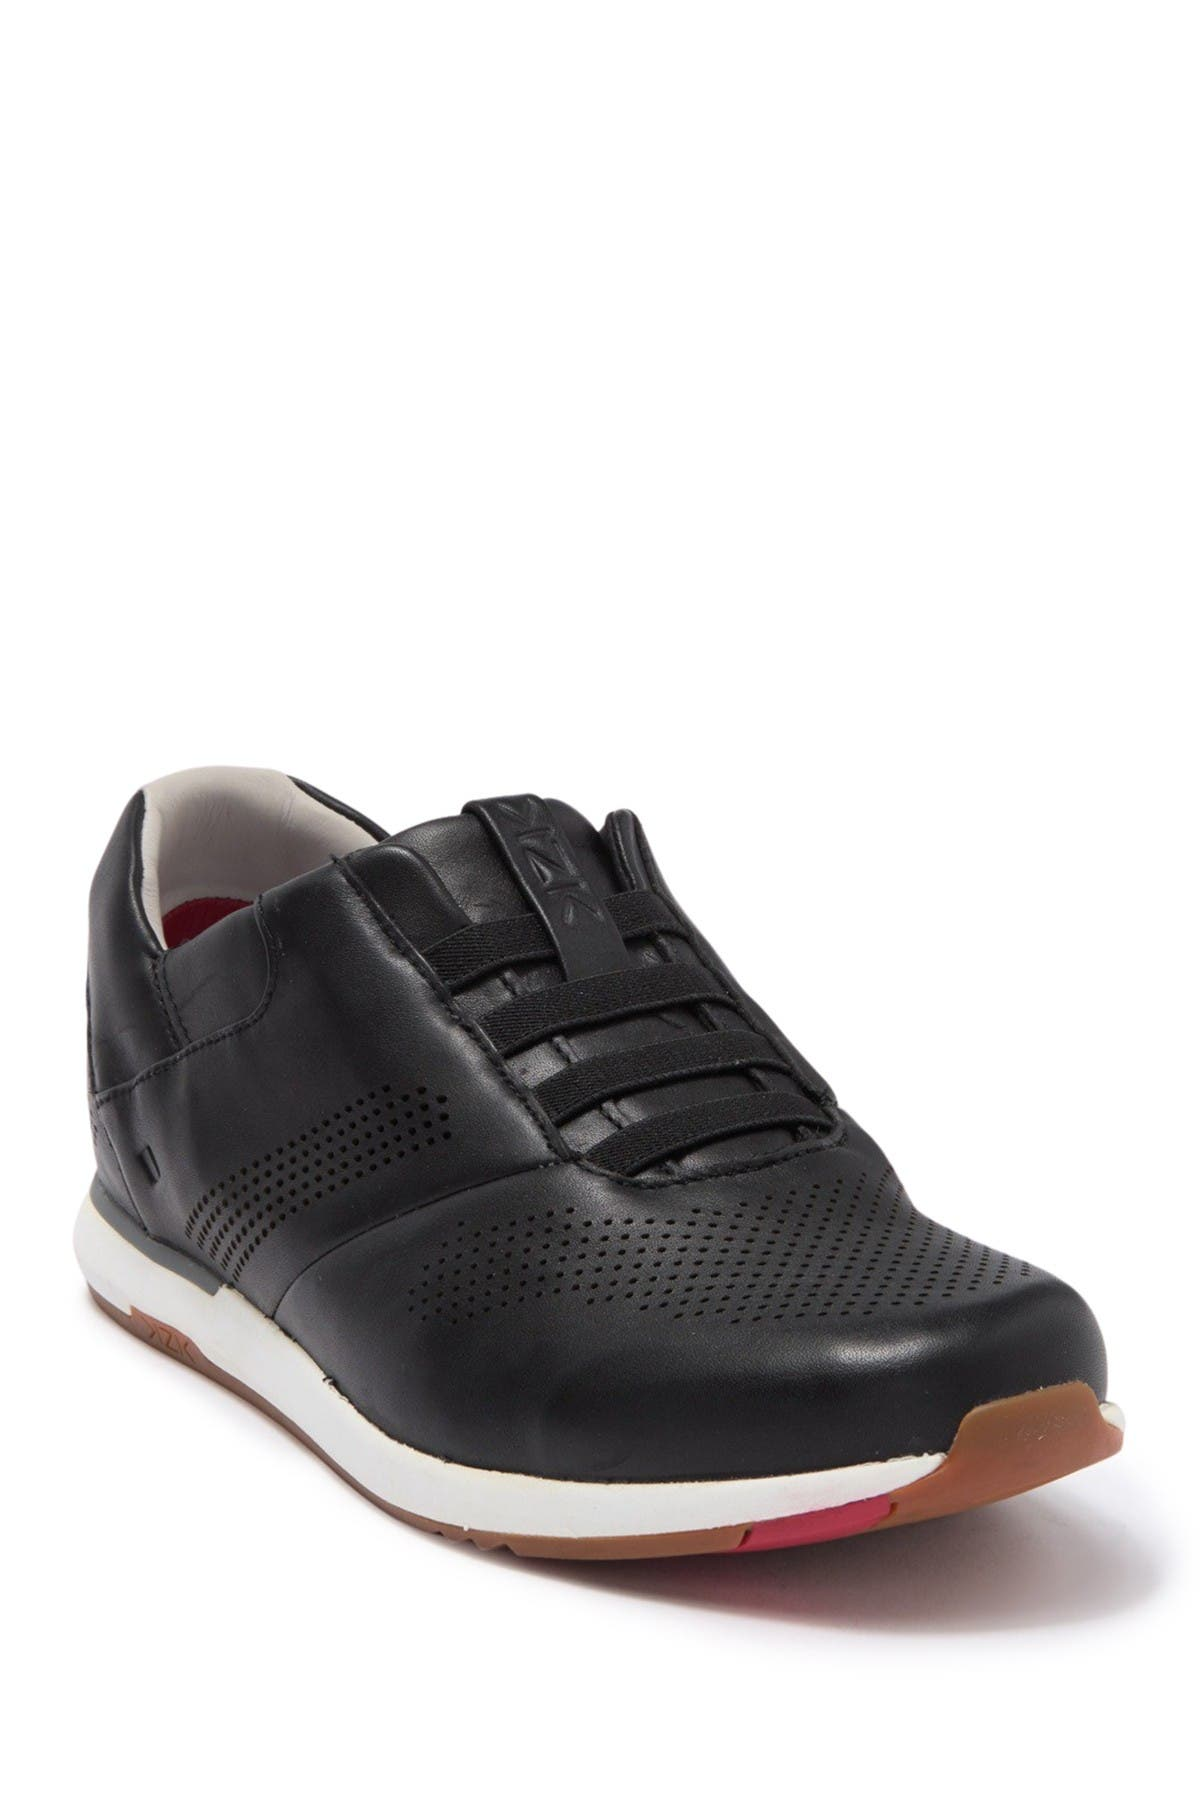 Image of KIZIK Boston Leather Slip-On Sneaker